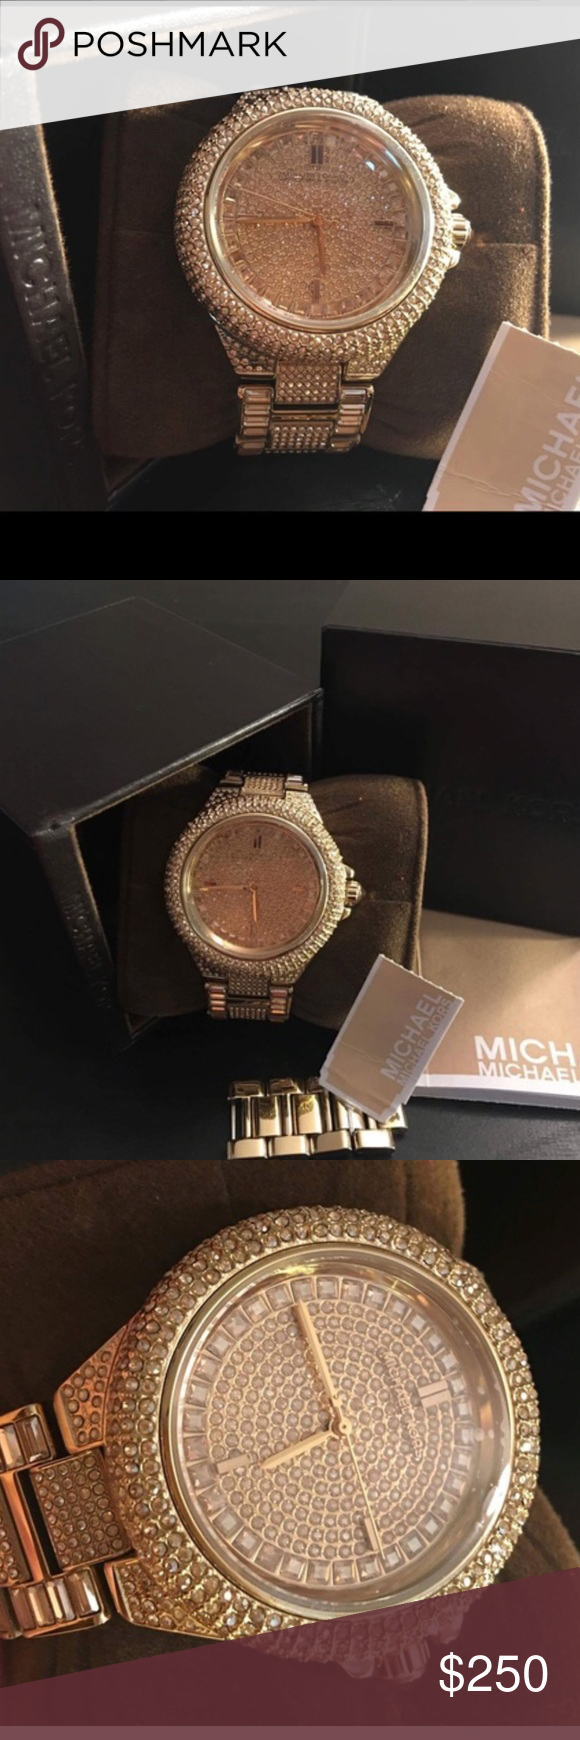 523474ae67d5 💎⌚️Michael Kors⌚ 💎Camille Gold Tone Watch 100% Authentic ...